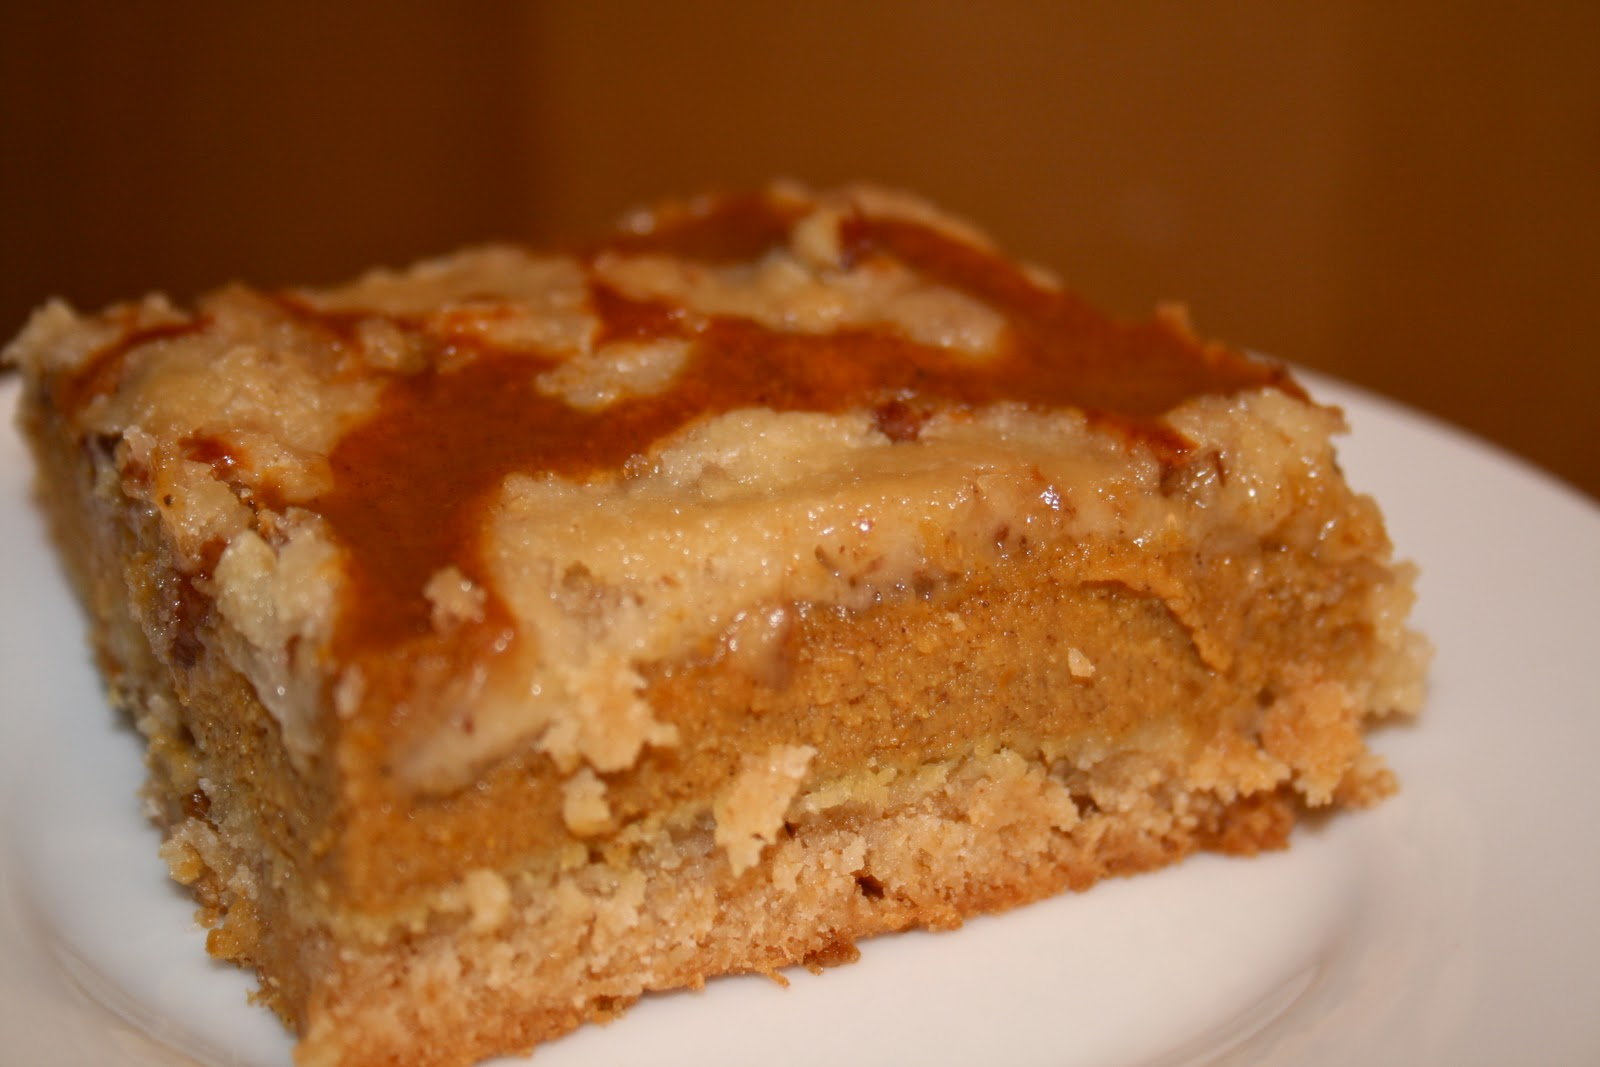 Pumpkin Dessert With Cake Mix